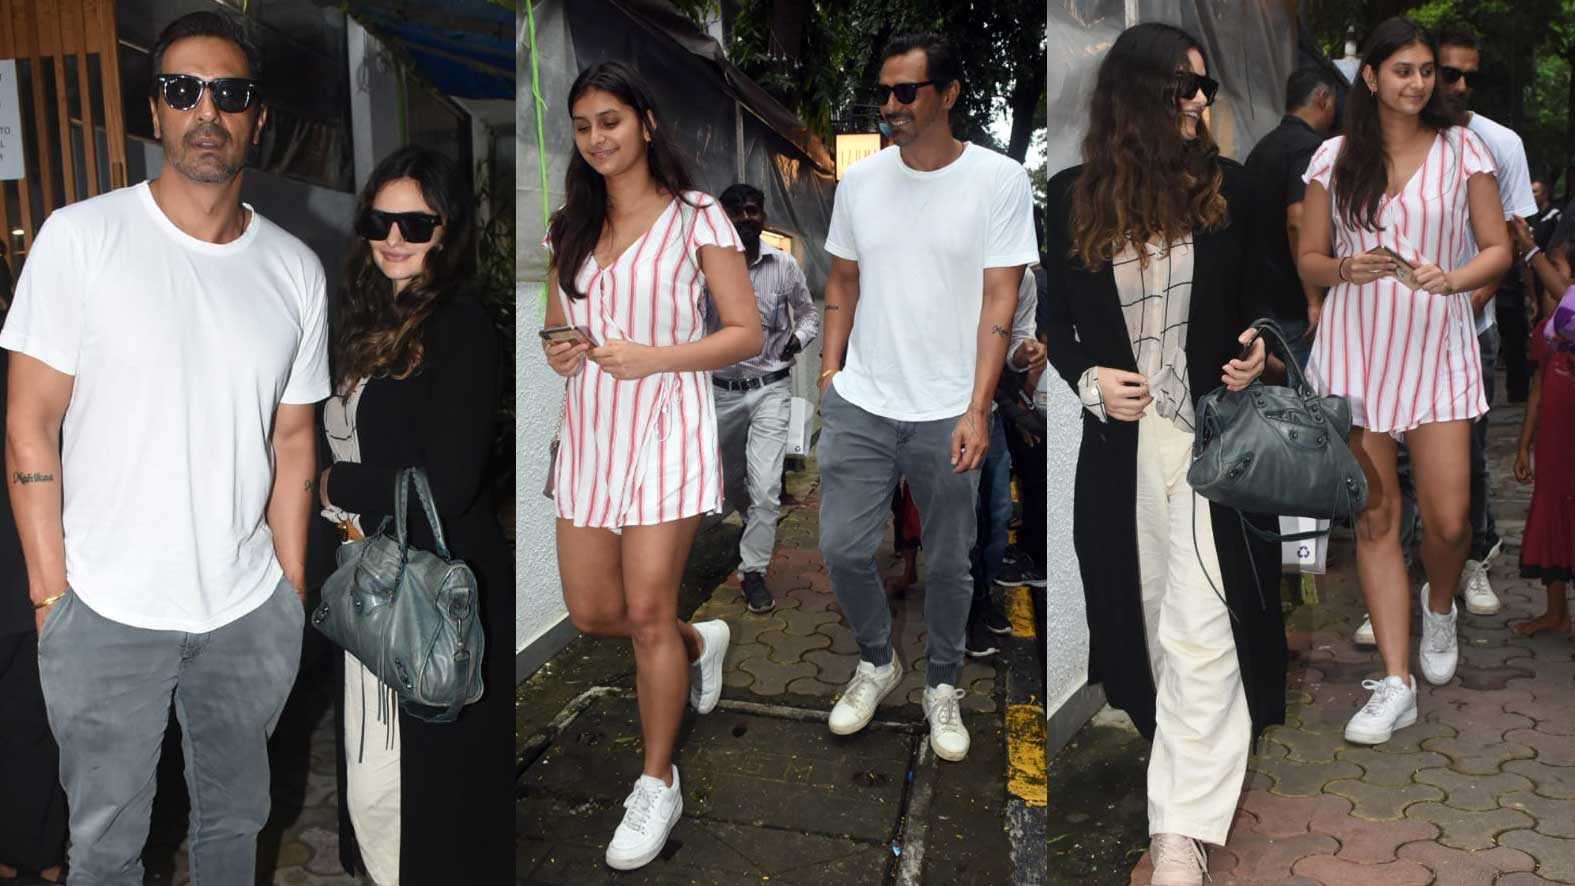 Arjun Rampal enjoys lunch with girlfriend Gabriella Demetriades and daughter Mahikaa Rampal